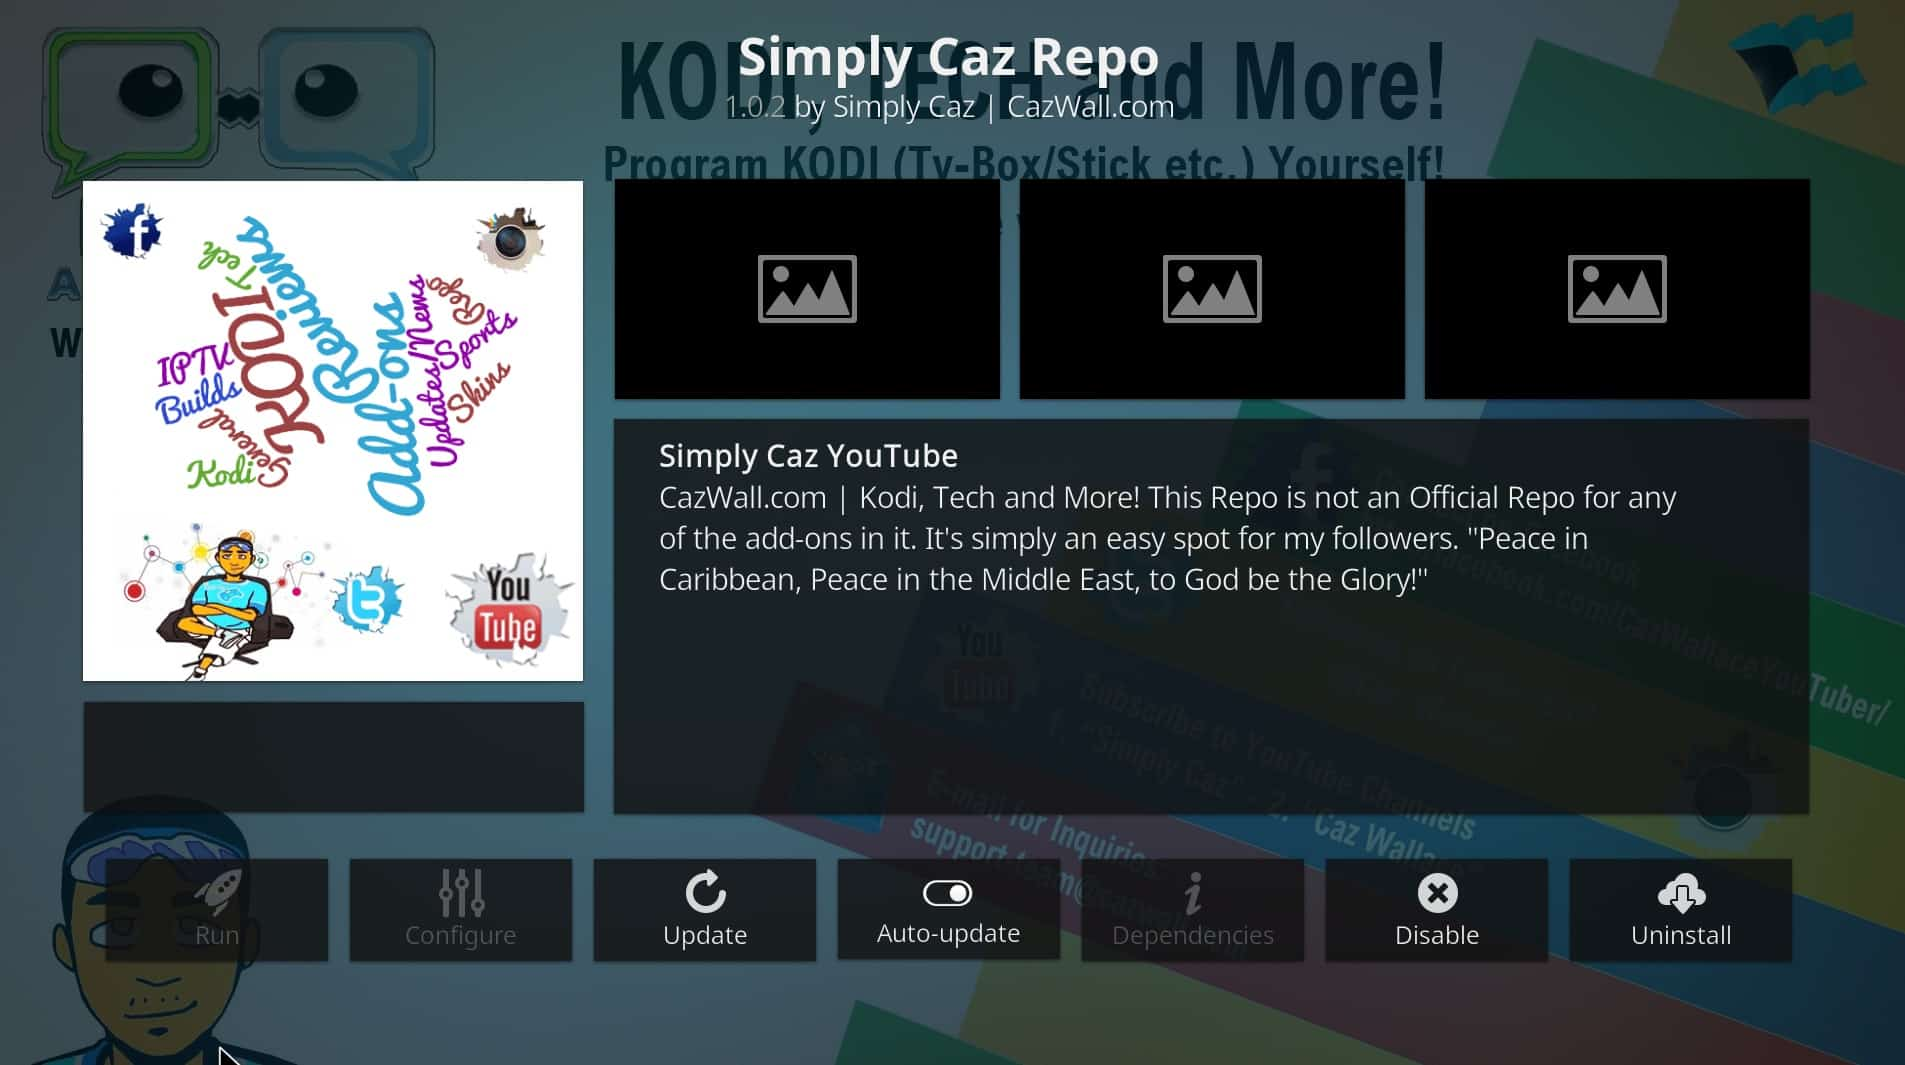 Best Kodi Repos for June 2019: 6 We Love and some to be wary of